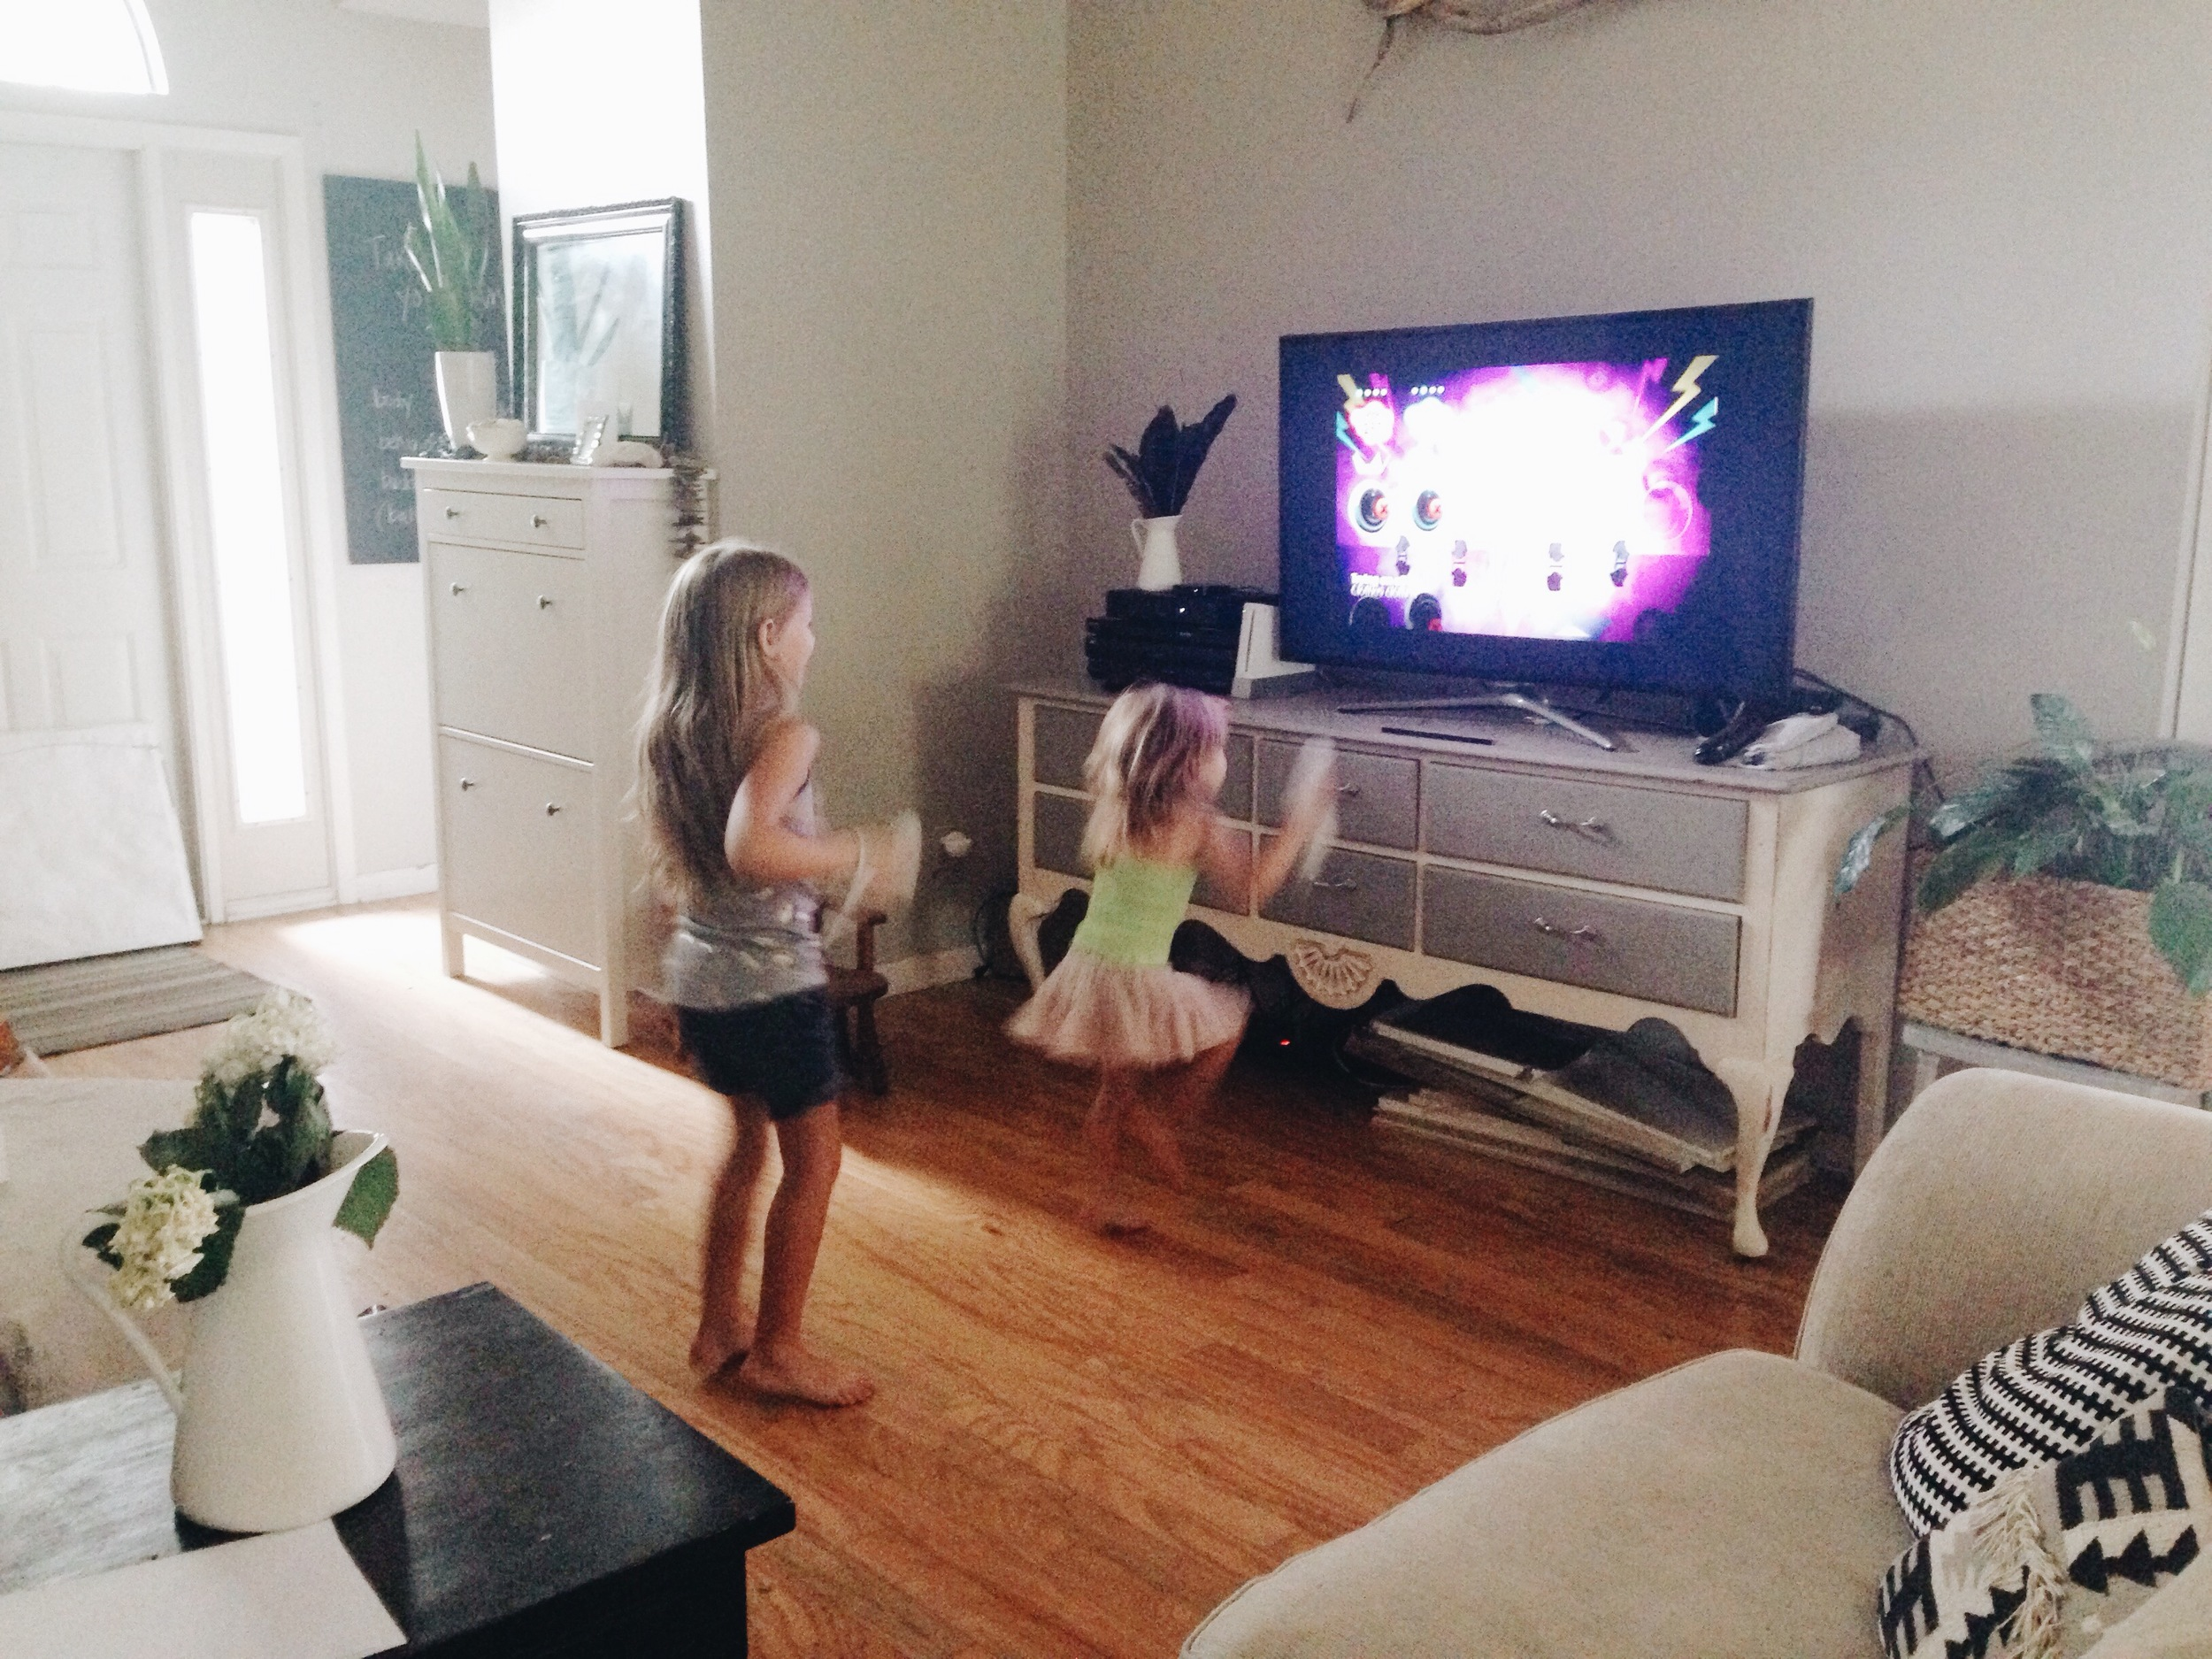 Just Dance fun, Stacey Woods